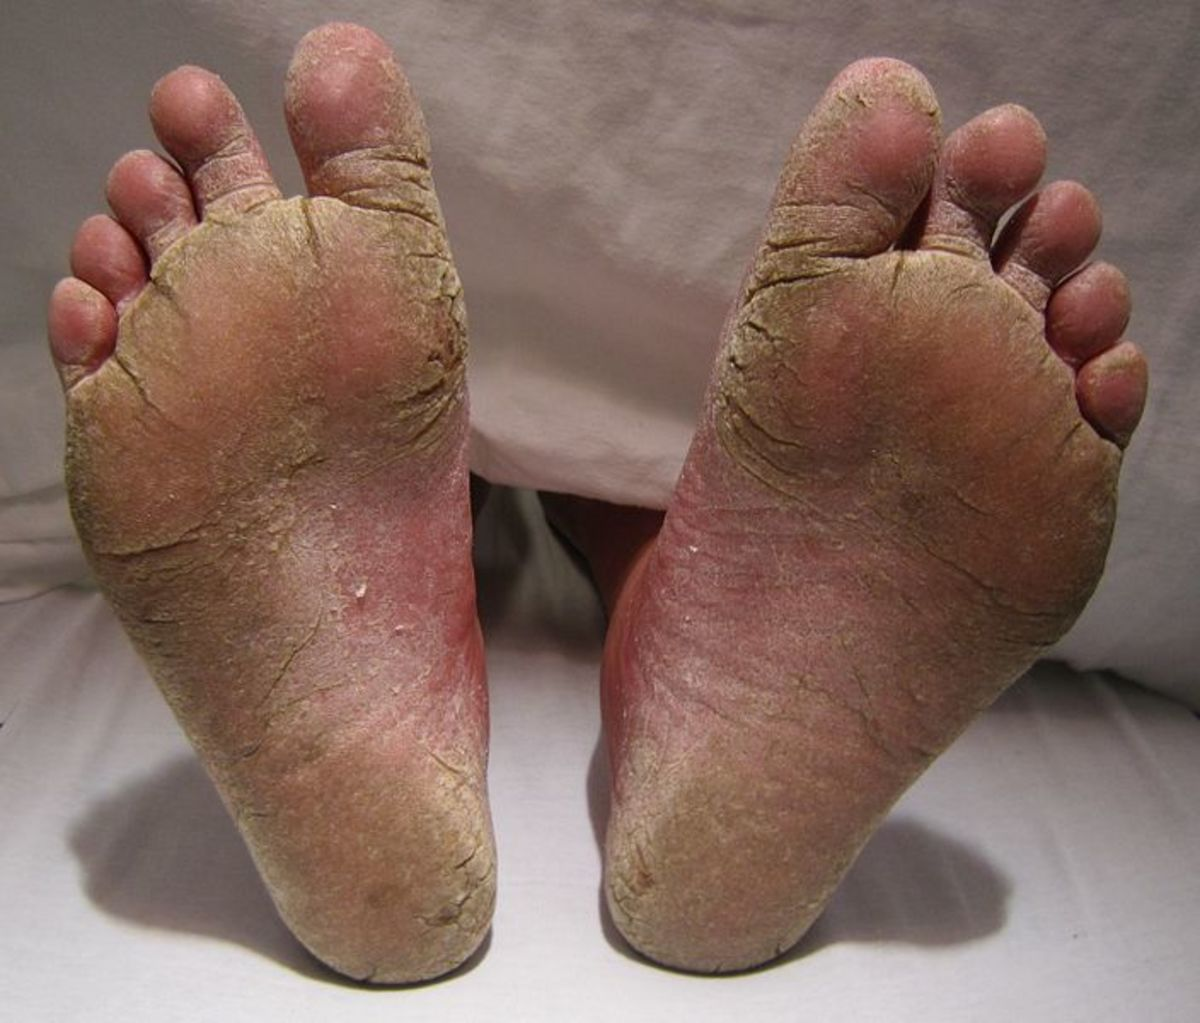 Natural Home Remedies, Athletes Foot Symptoms And Treatment